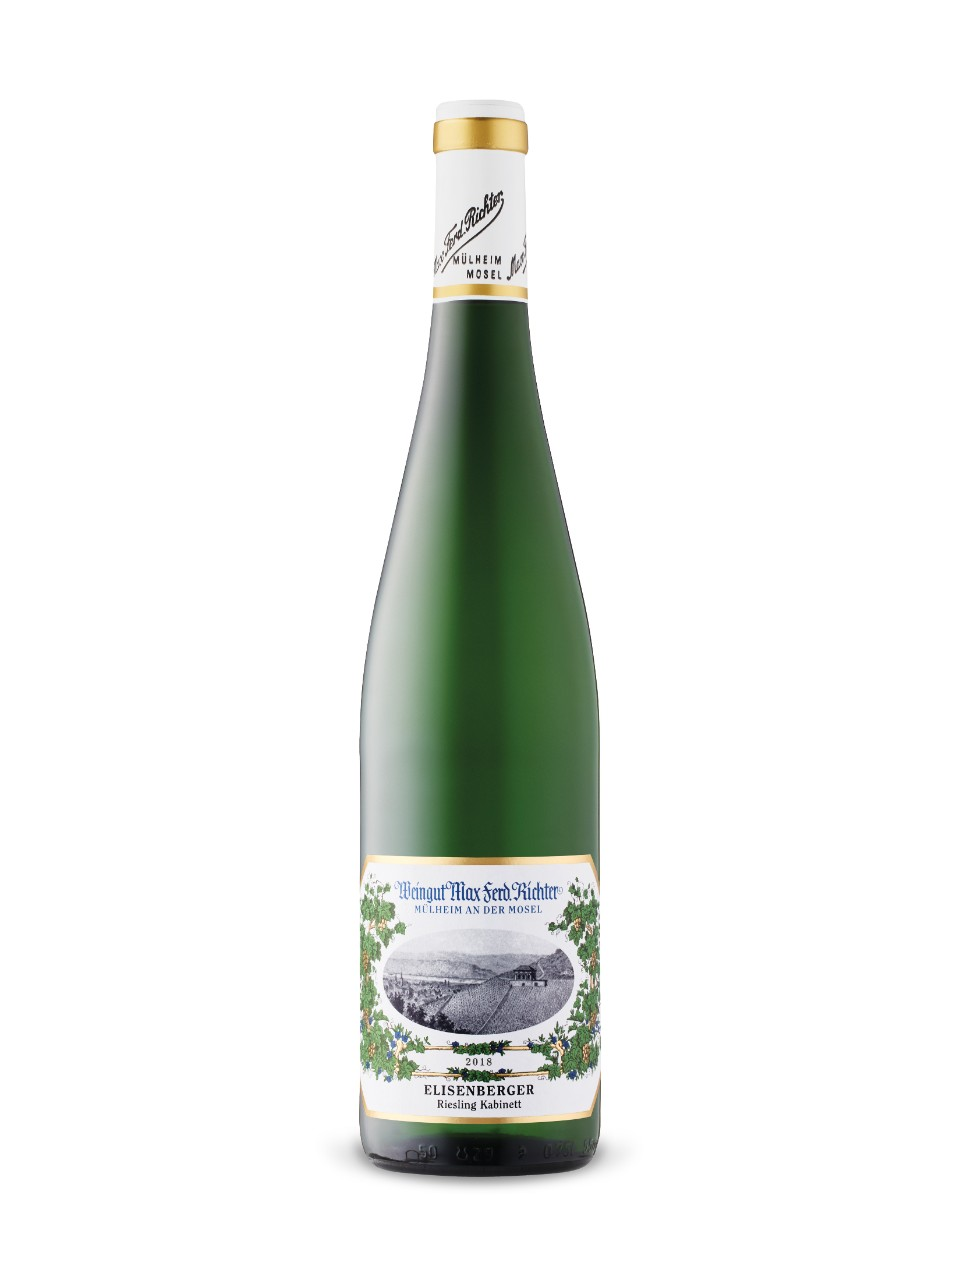 Image for Max Ferd. Richter Elisenberger Kabinett Riesling 2016 from LCBO